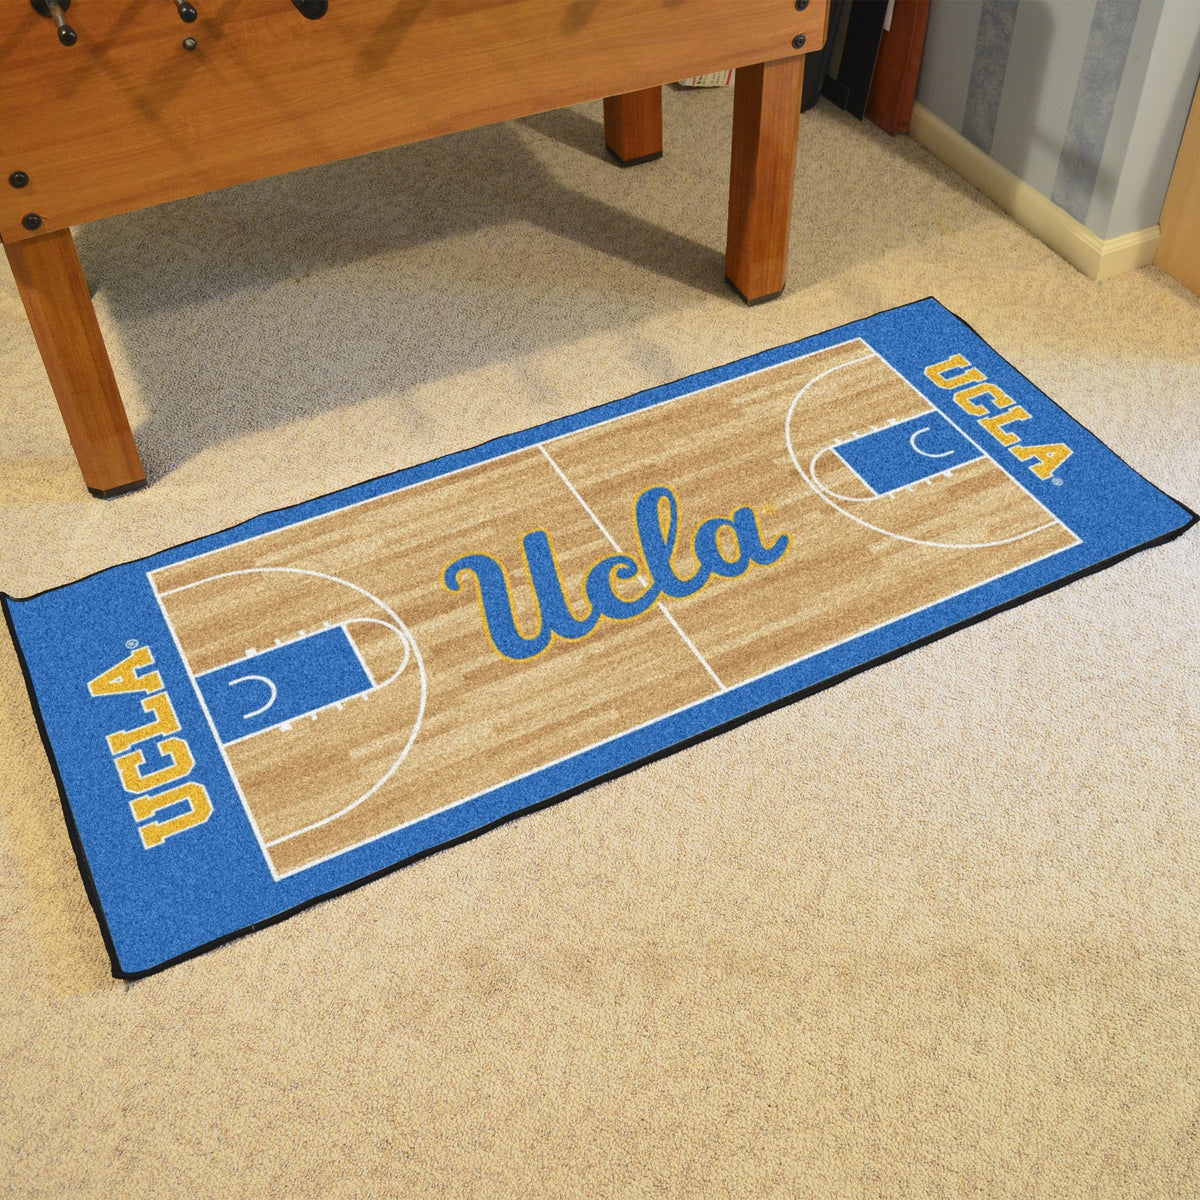 Collegiate - NCAA Basketball Runner Collegiate Mats, Rectangular Mats, NCAA Basketball Runner, Collegiate, Home Fan Mats UCLA